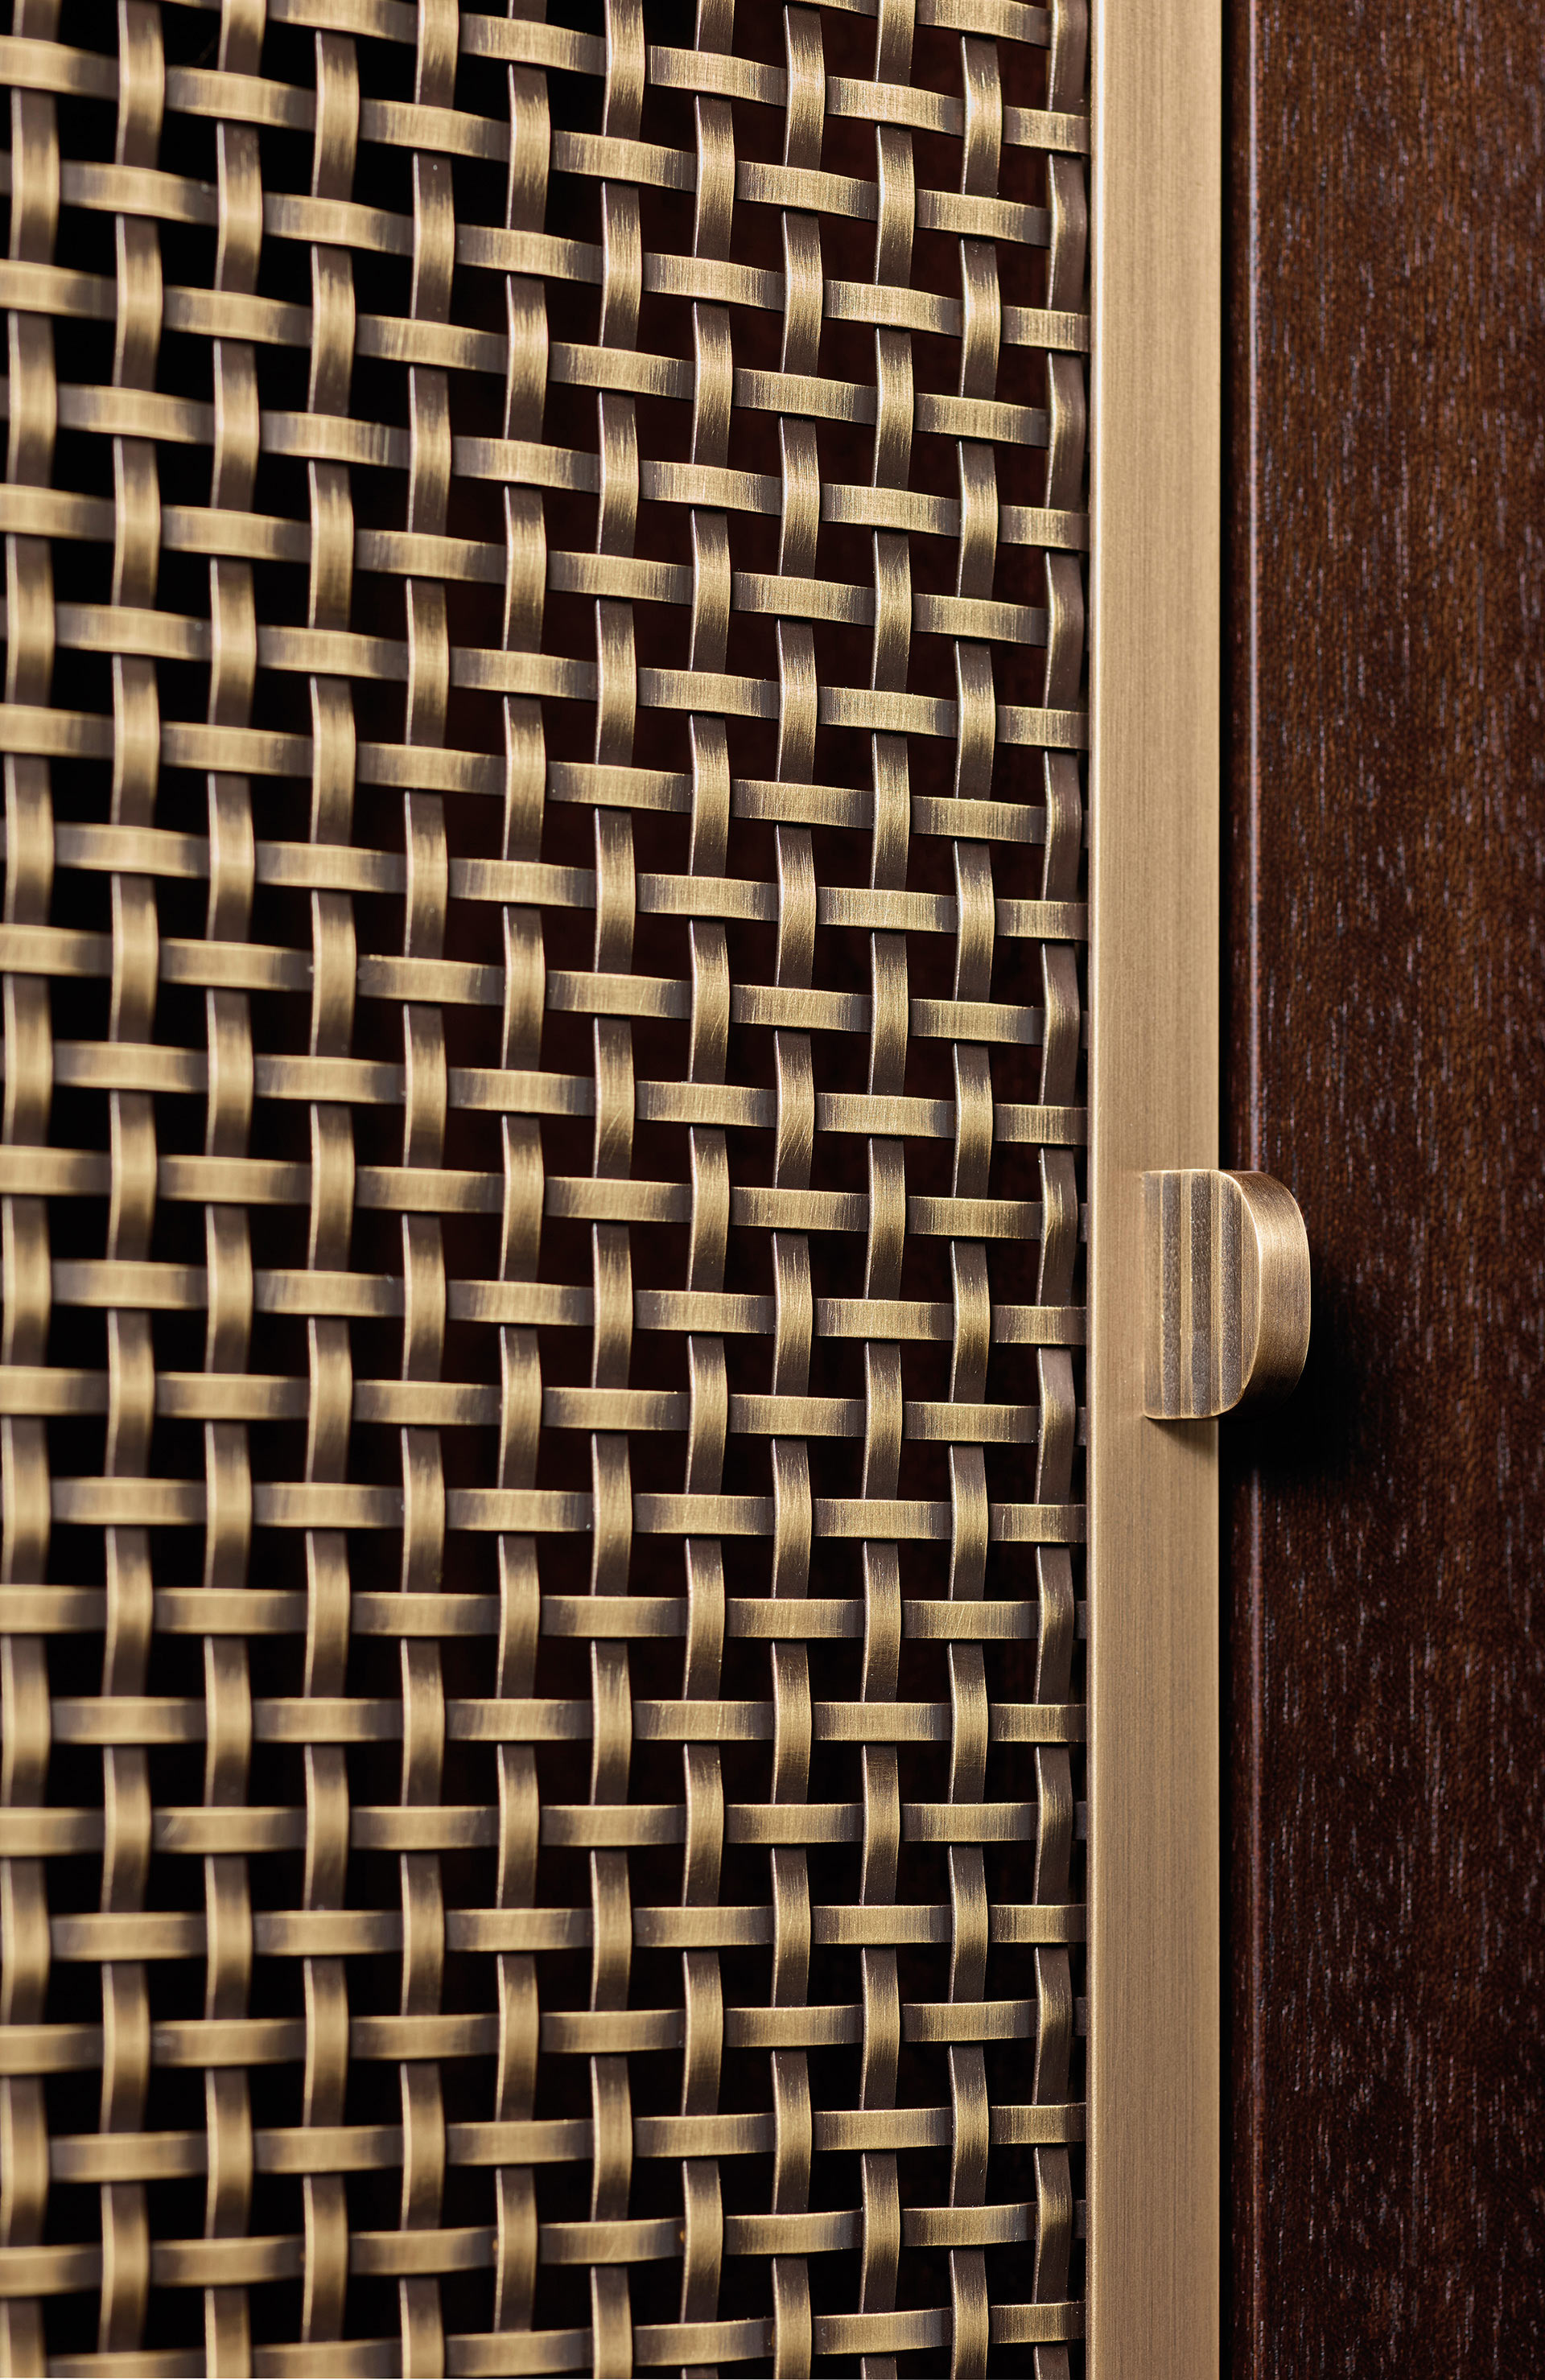 Detail of the bronze handle of Nightwood, a wooden modular bookcase with bronze details, from Promemoria's Night Tales collection | Promemoria